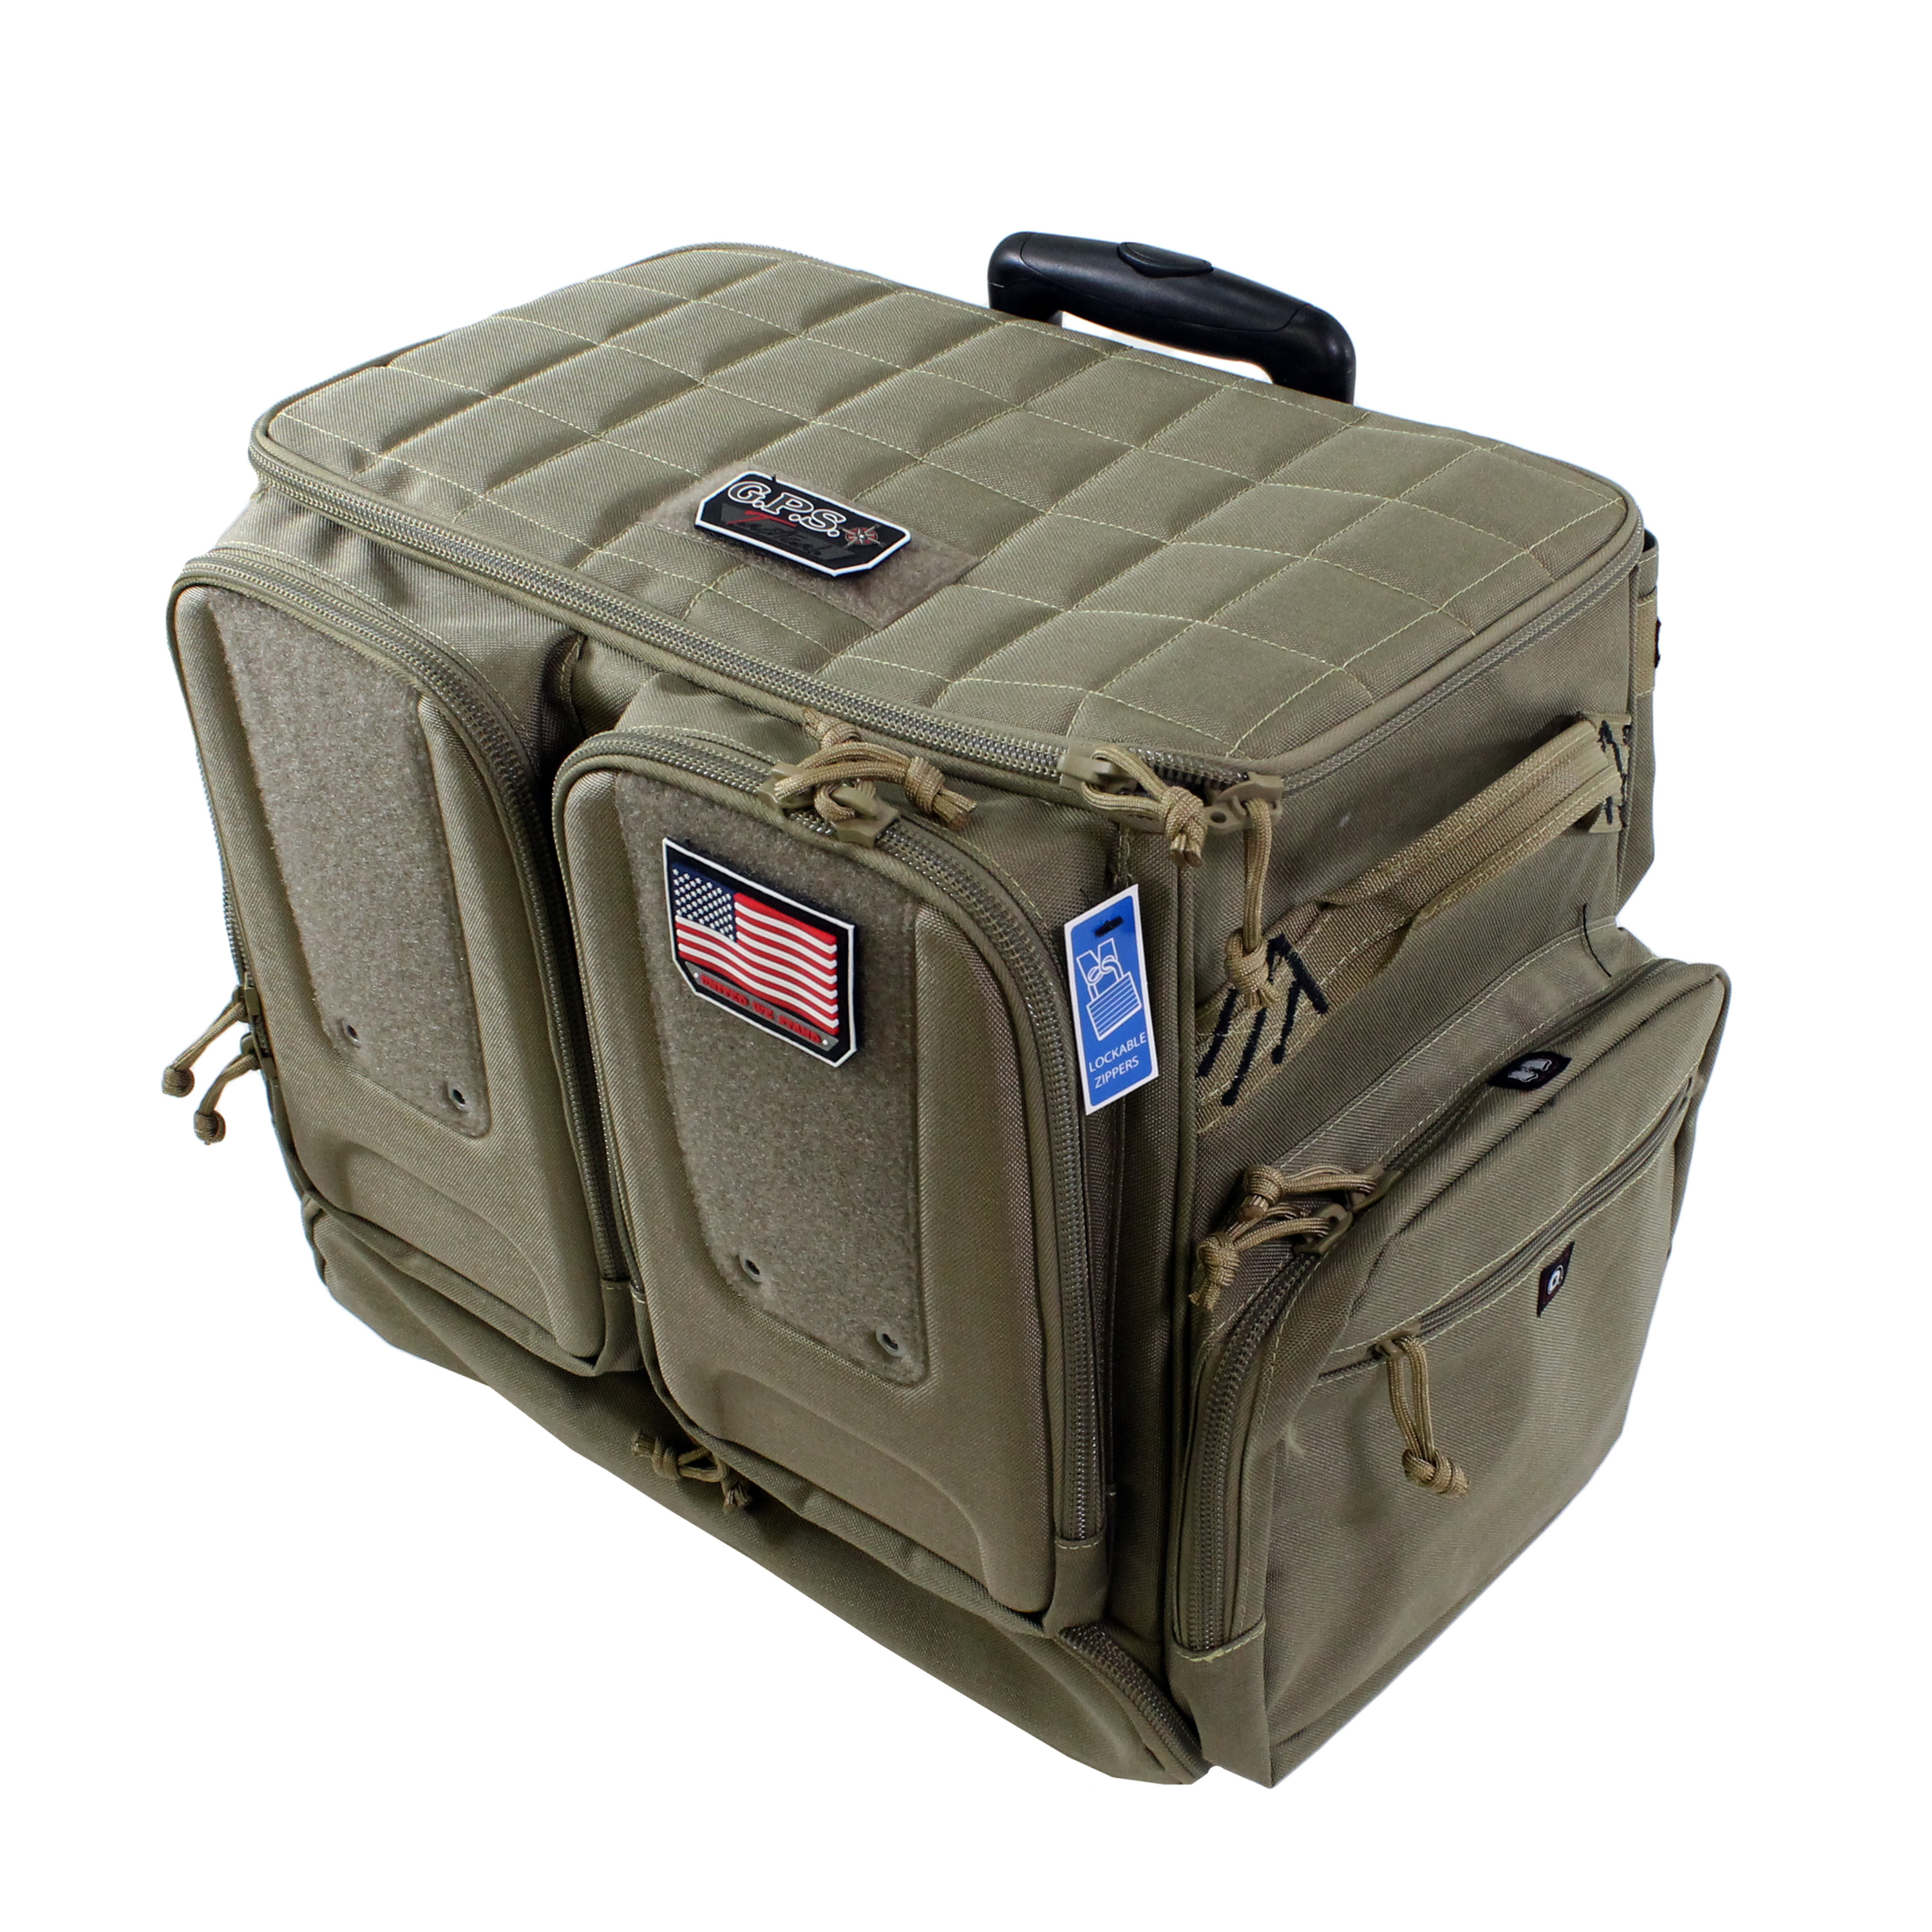 G Outdoors Range Bag Tactical Rolling, 10 Handguns, Tan